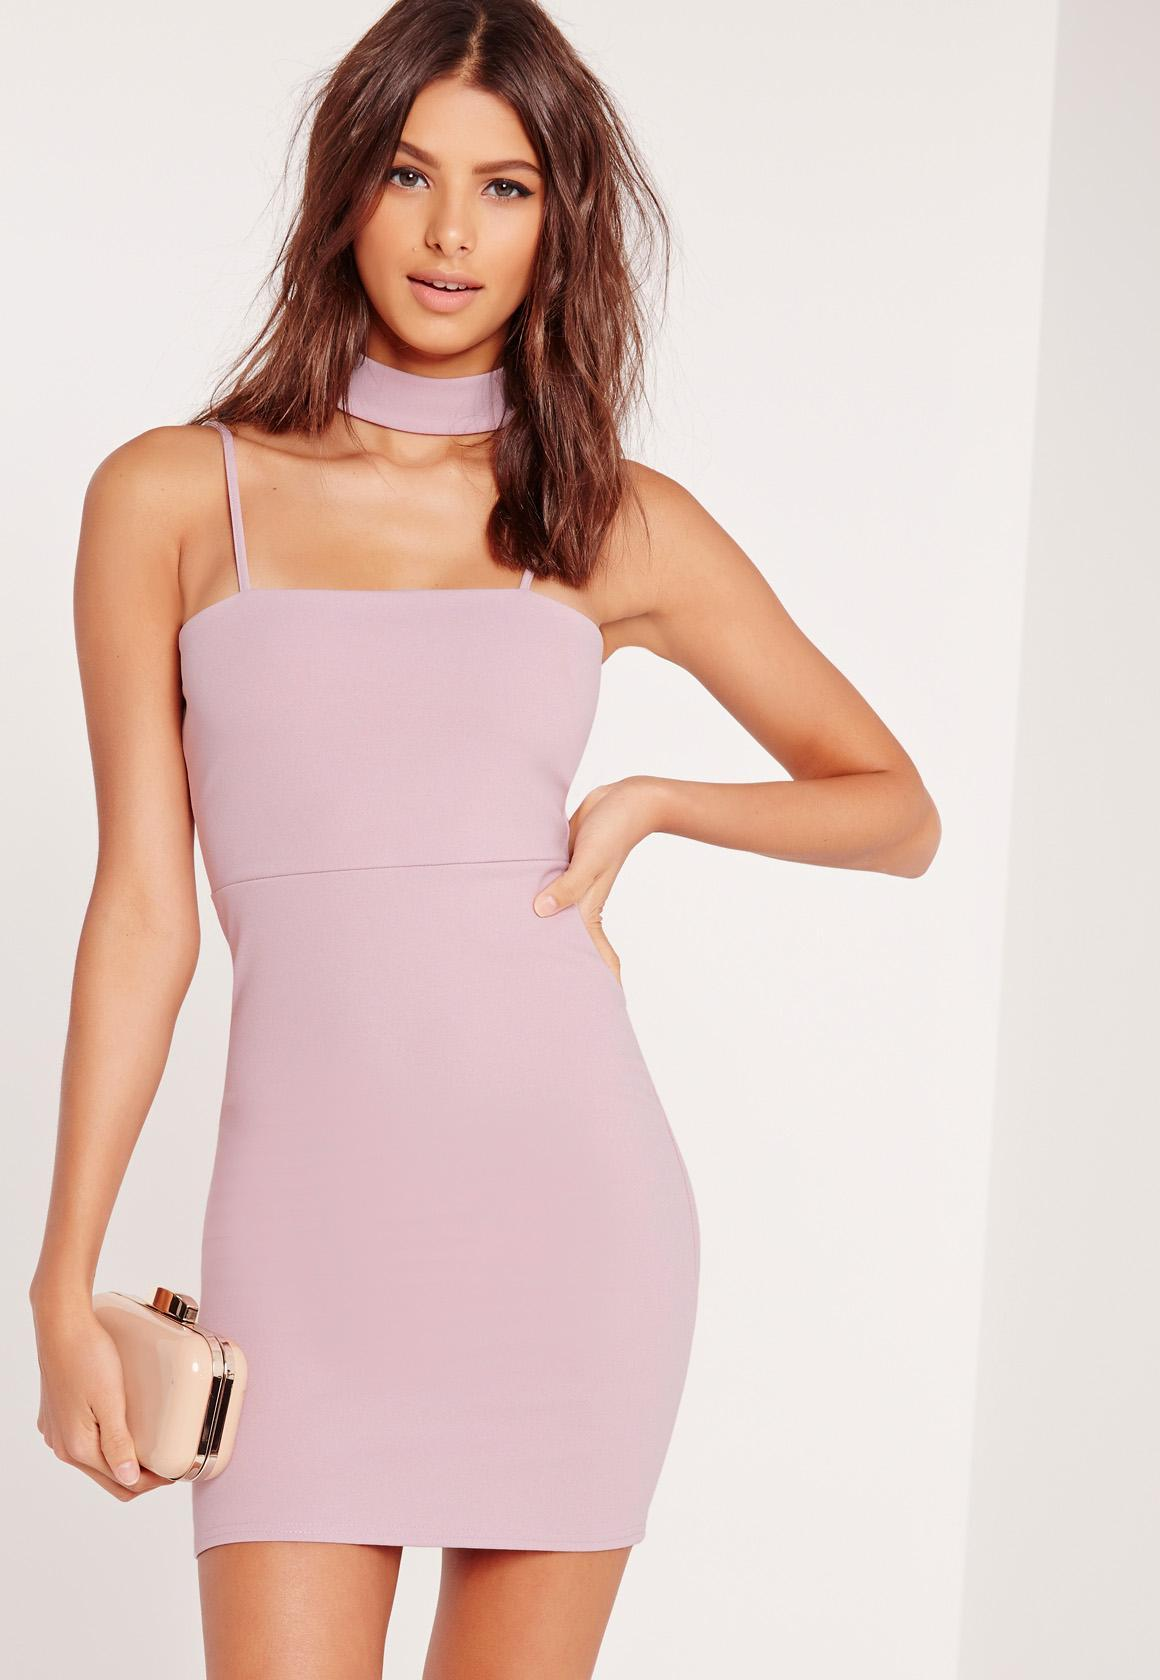 Missguided Choker Neck Bodycon Dress Mauve in Pink - Save